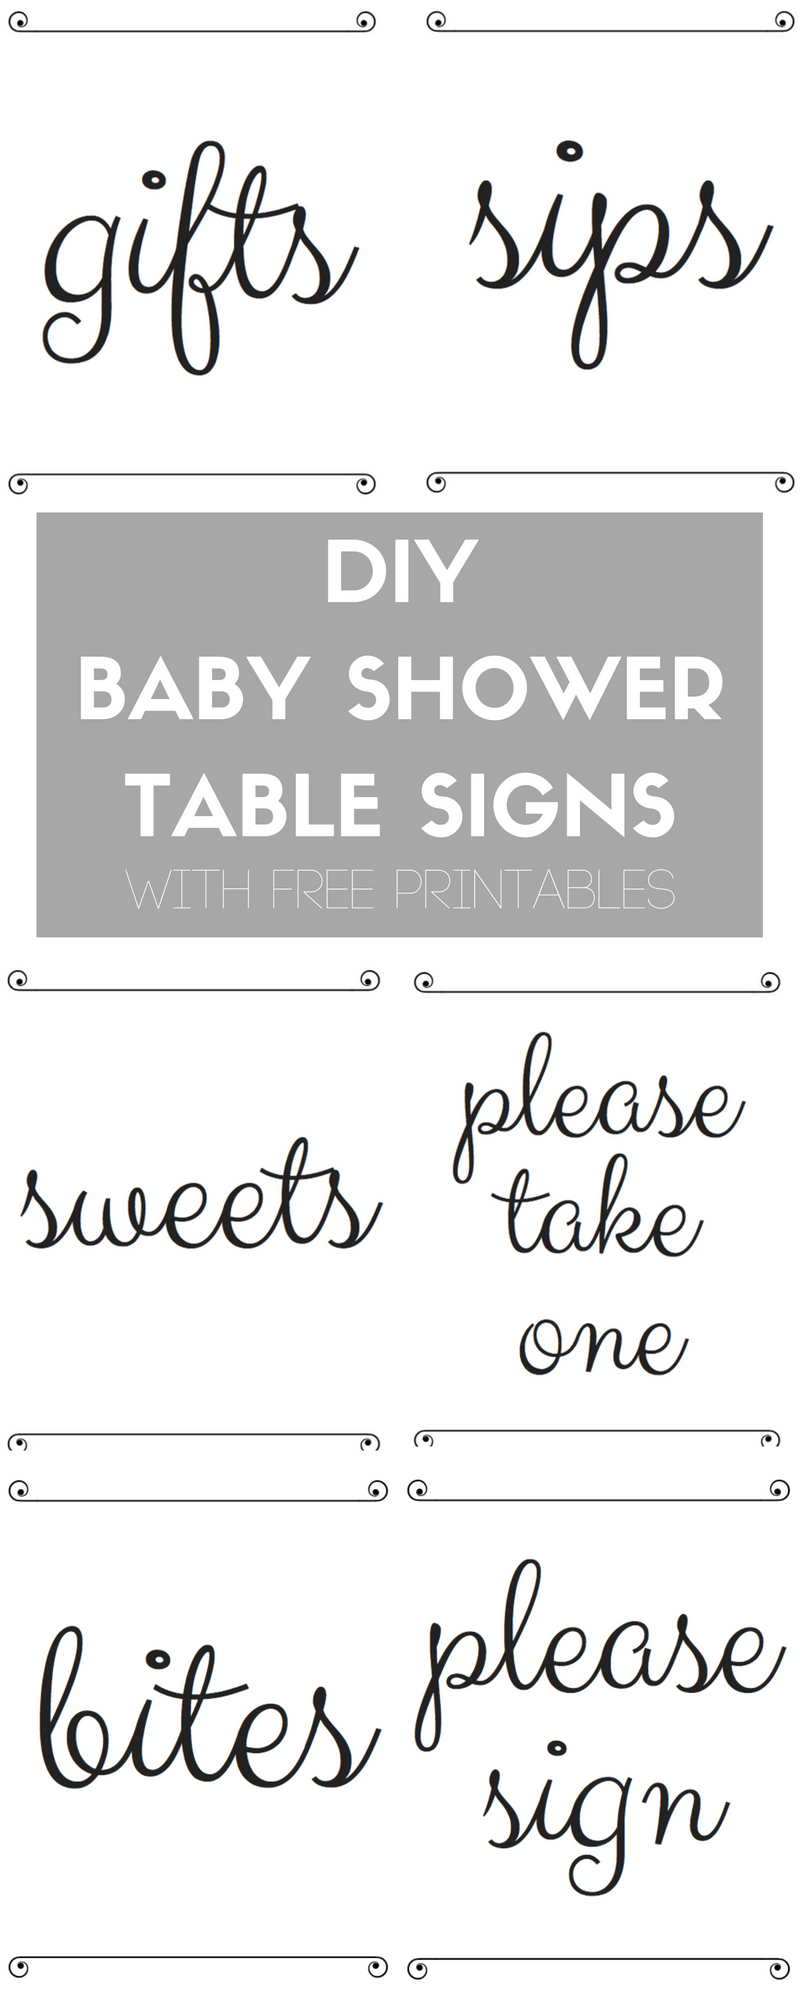 Diy Baby Shower Table Signs With Free Printables | Best Of The Blog - Free Printable Baby Shower Table Signs